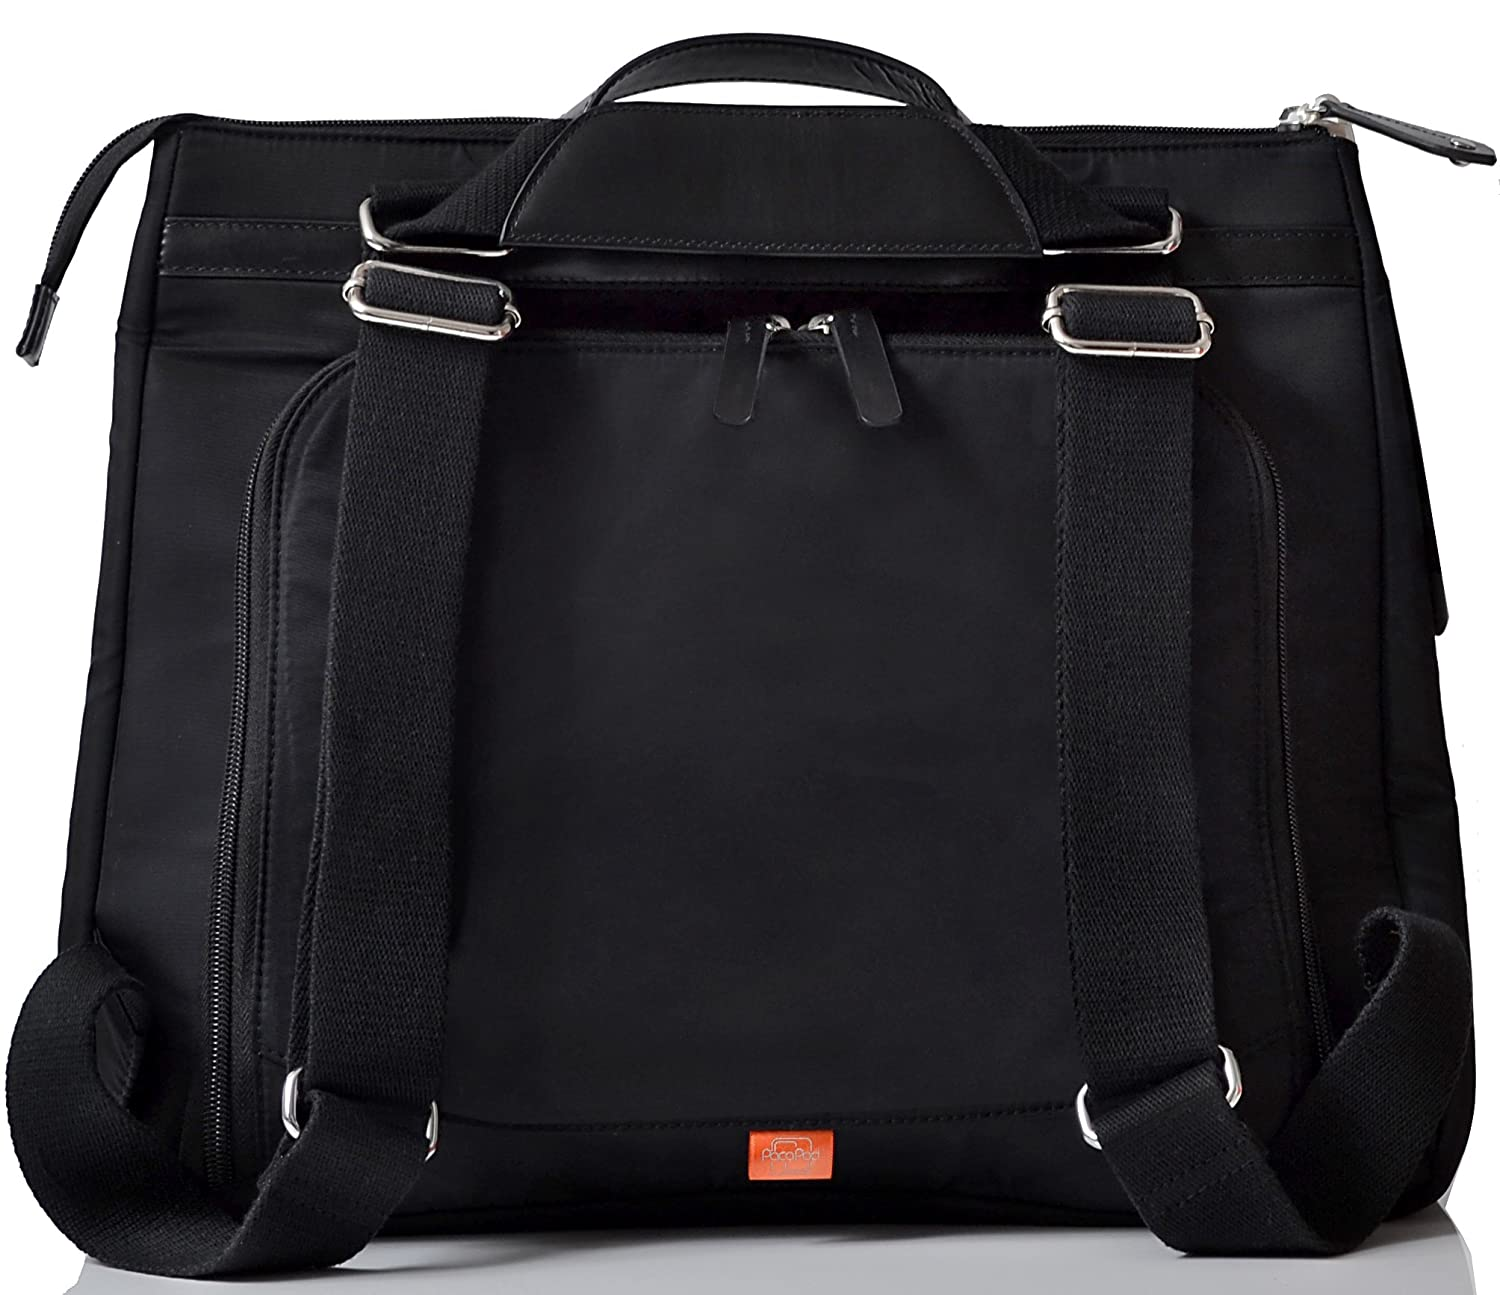 4465188fa909 Amazon.com   PacaPod Gladstone Black Designer Baby Changing Bag - Luxury  Convertible Messenger and Backpack 3 in 1 Organising System   Baby